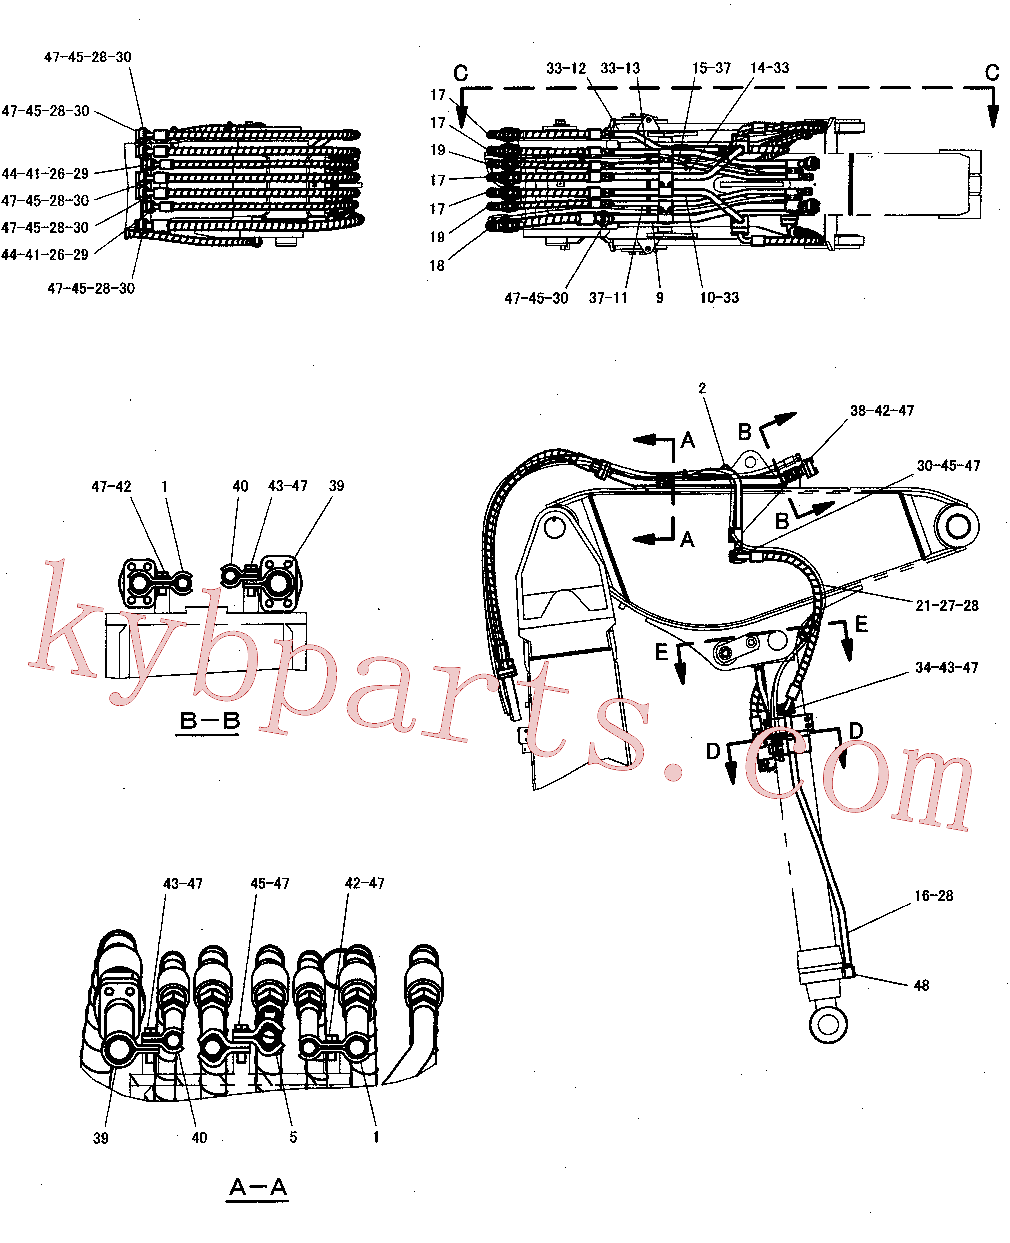 CAT 7Y-4038 for 325-A LN Excavator(EXC) hydraulic system 300-8170 Assembly